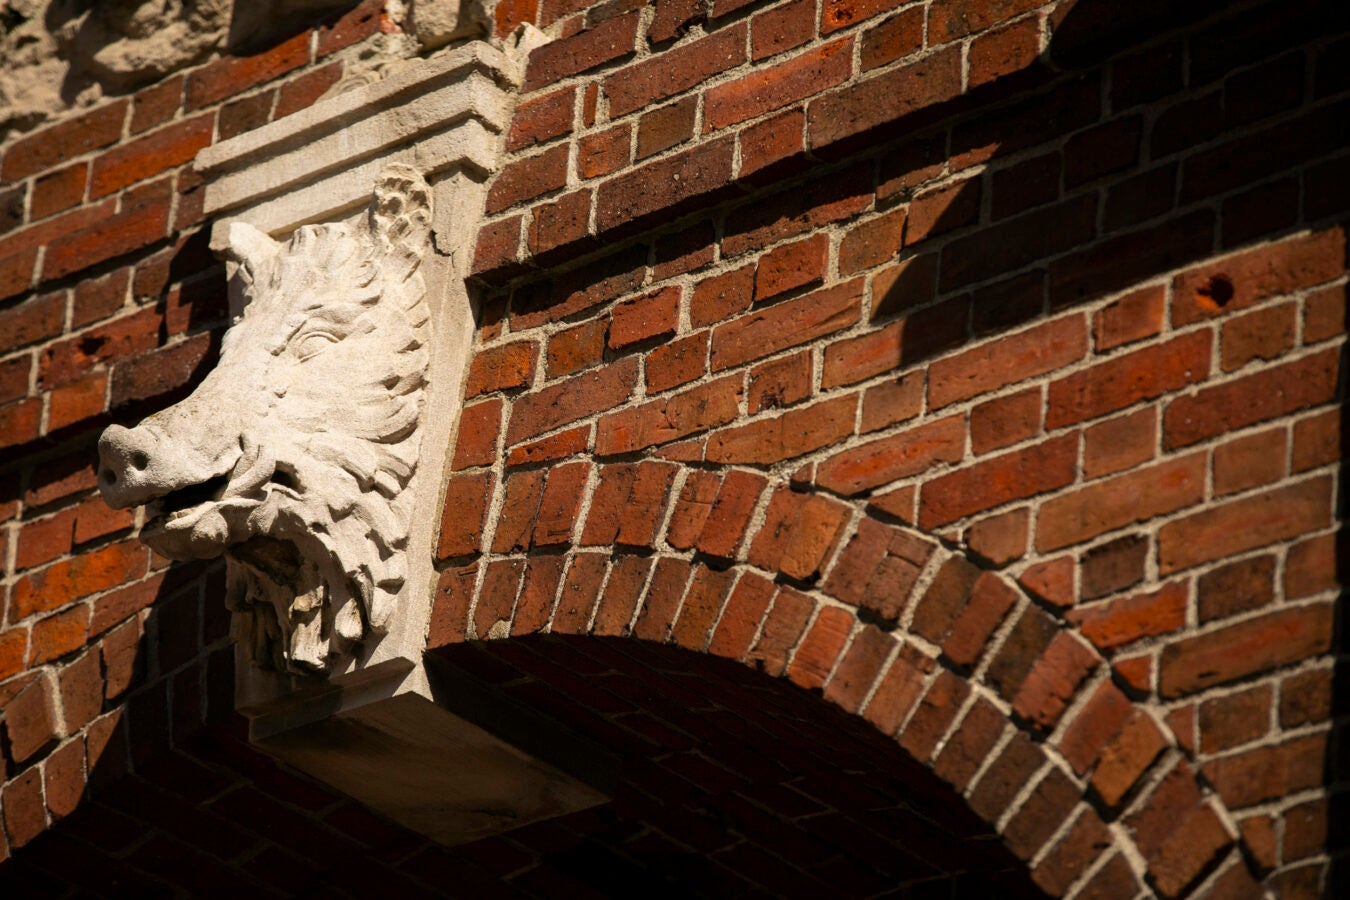 A boar head protrudes above the archway of the Joseph McKean Gate.